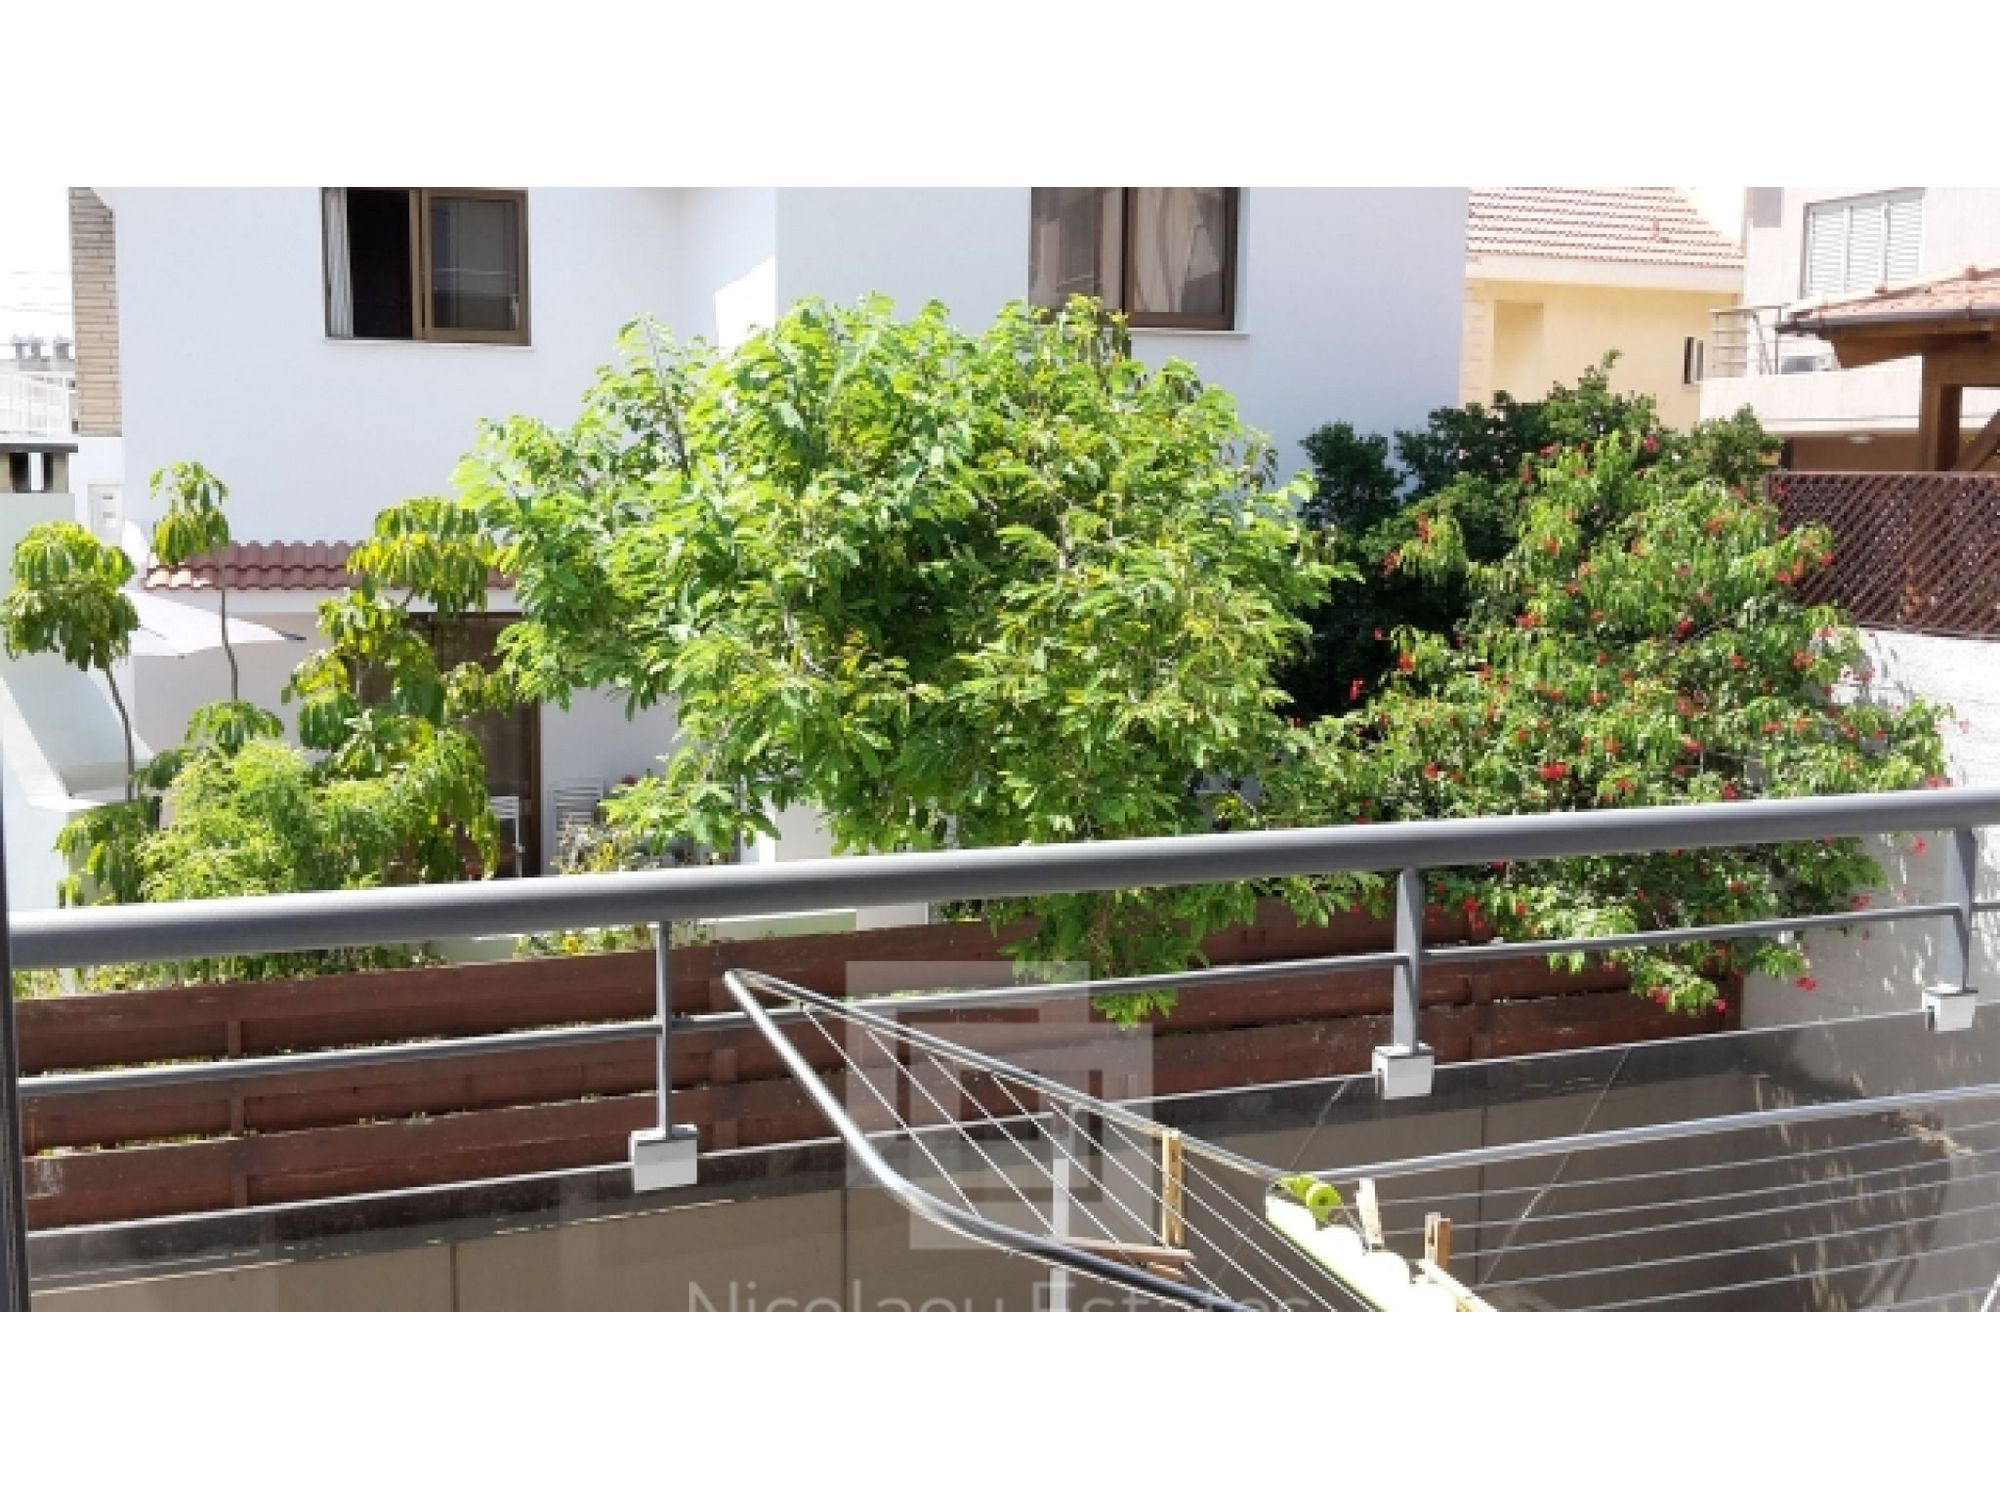 Archived 2 Bedroom Apartment For Rent In Potamos